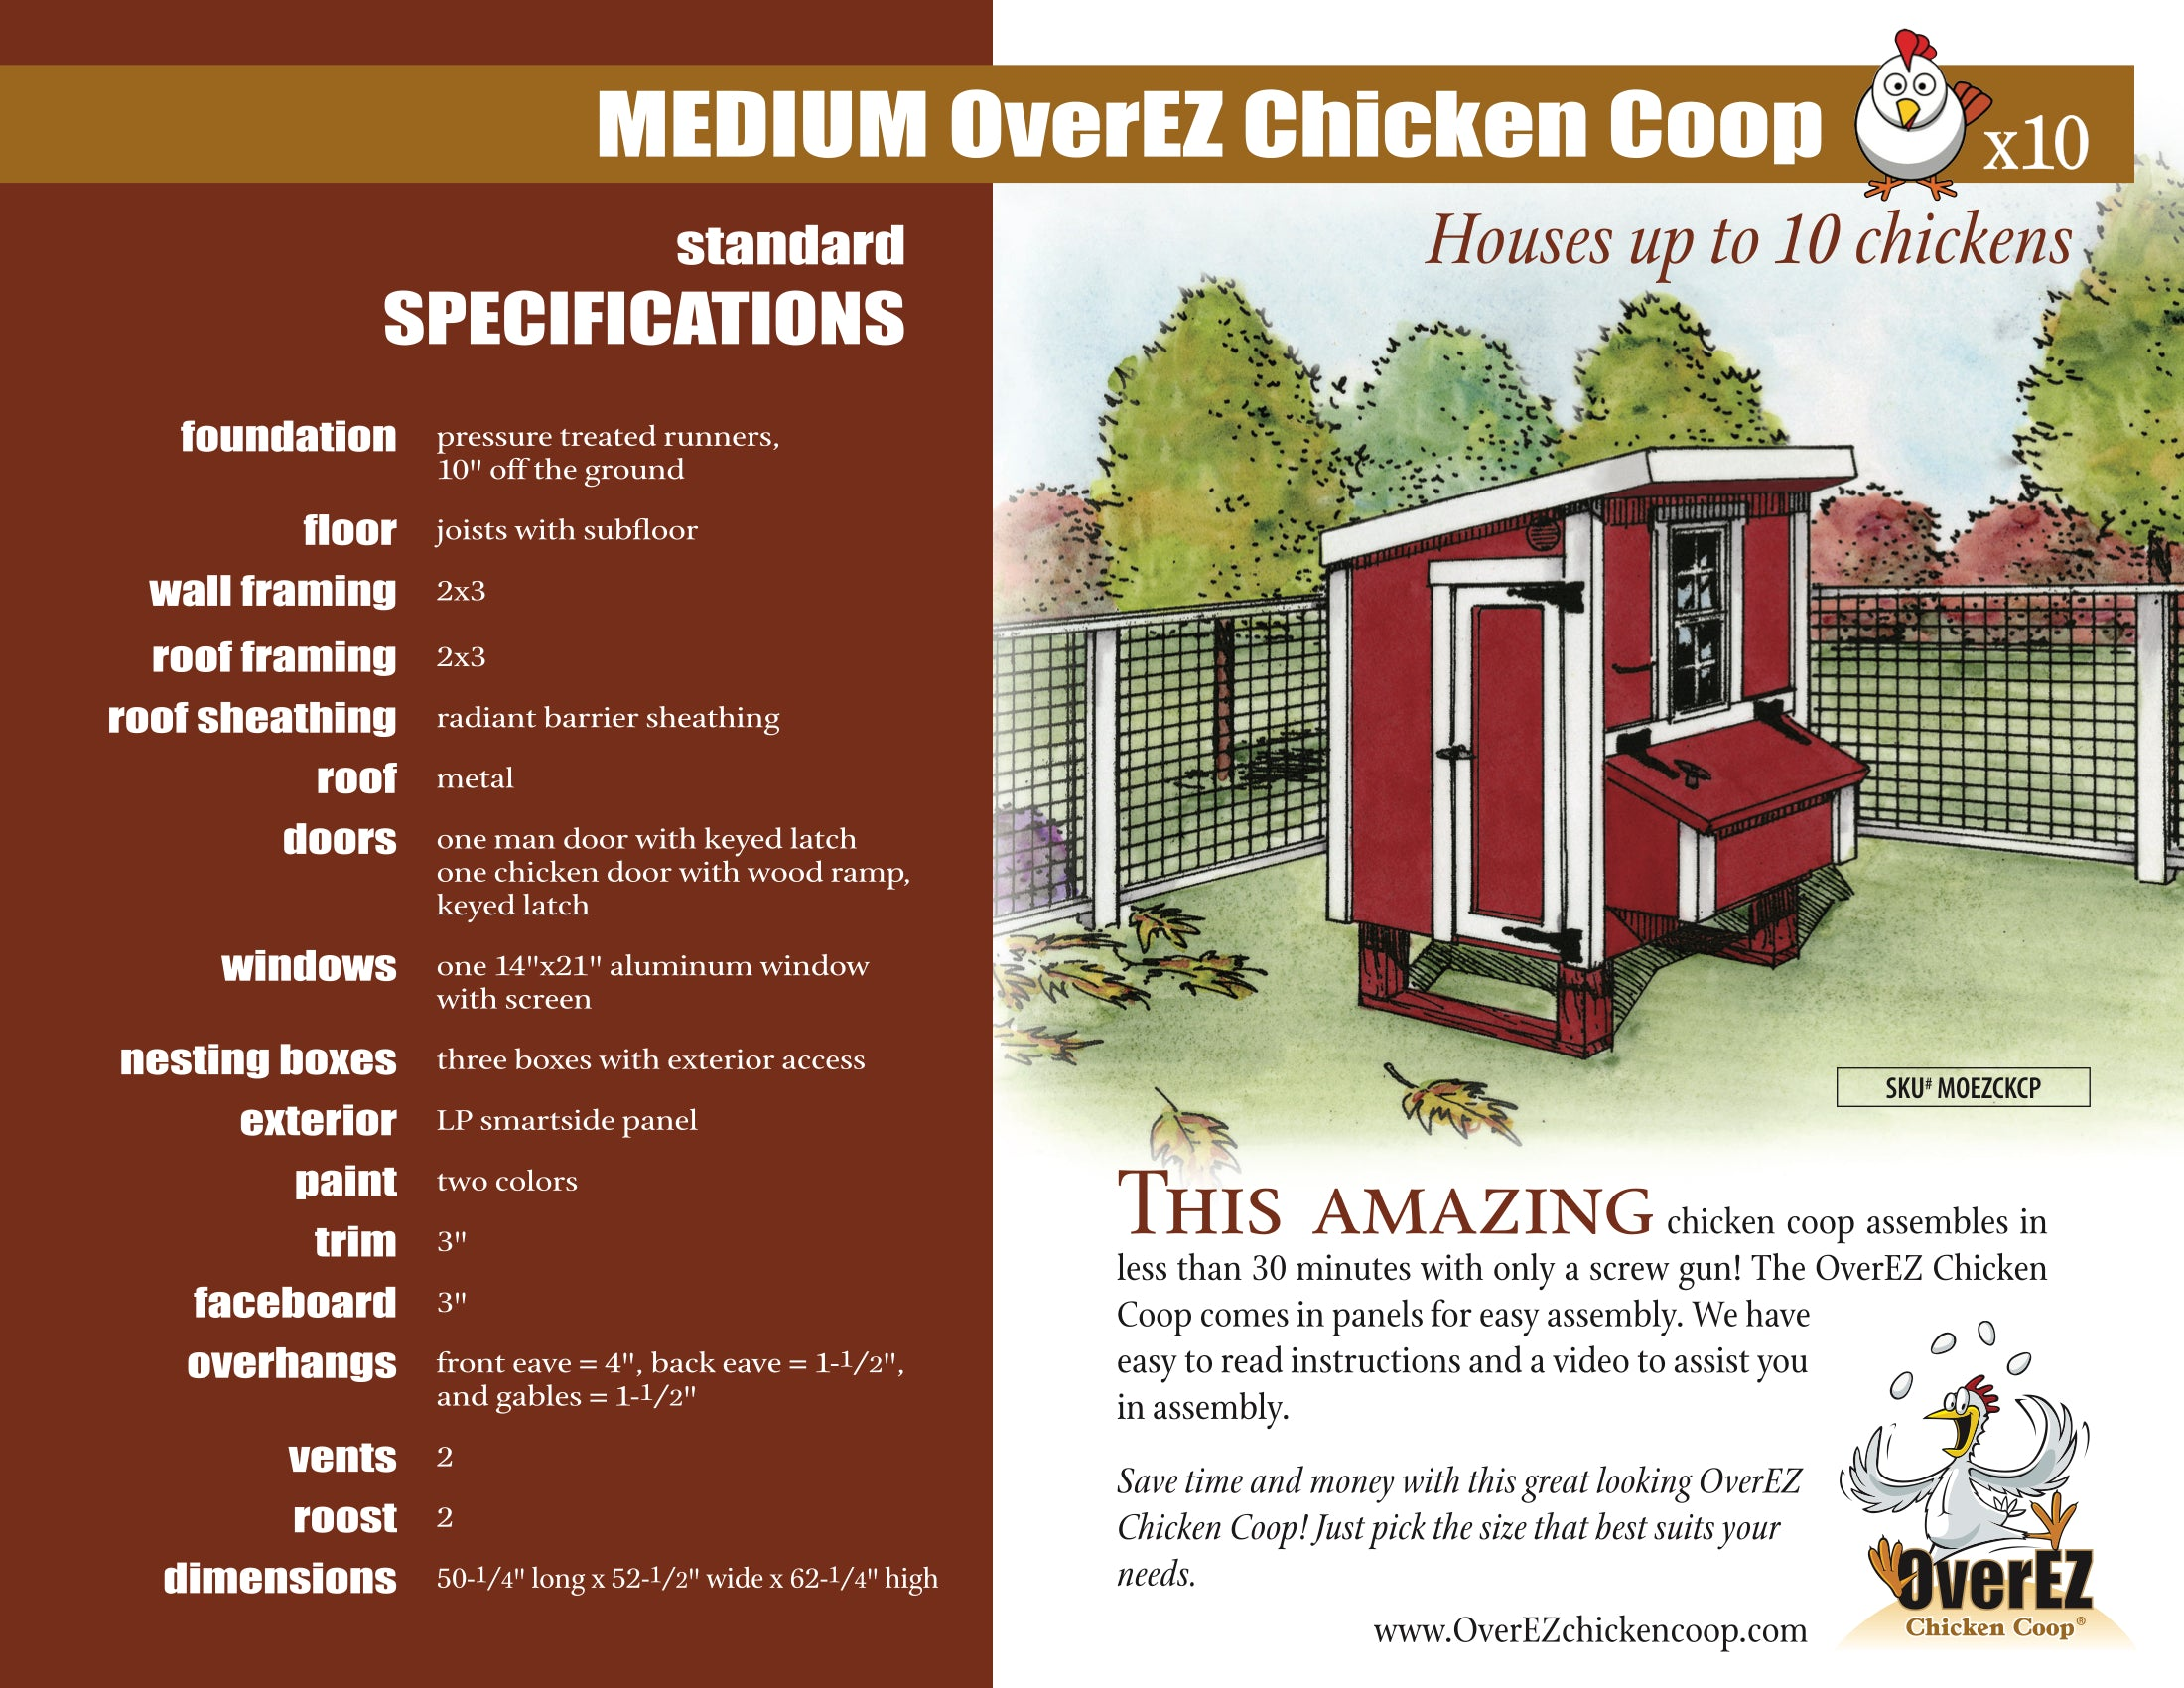 Medium OverEZ Chicken Coop Spec Sheet